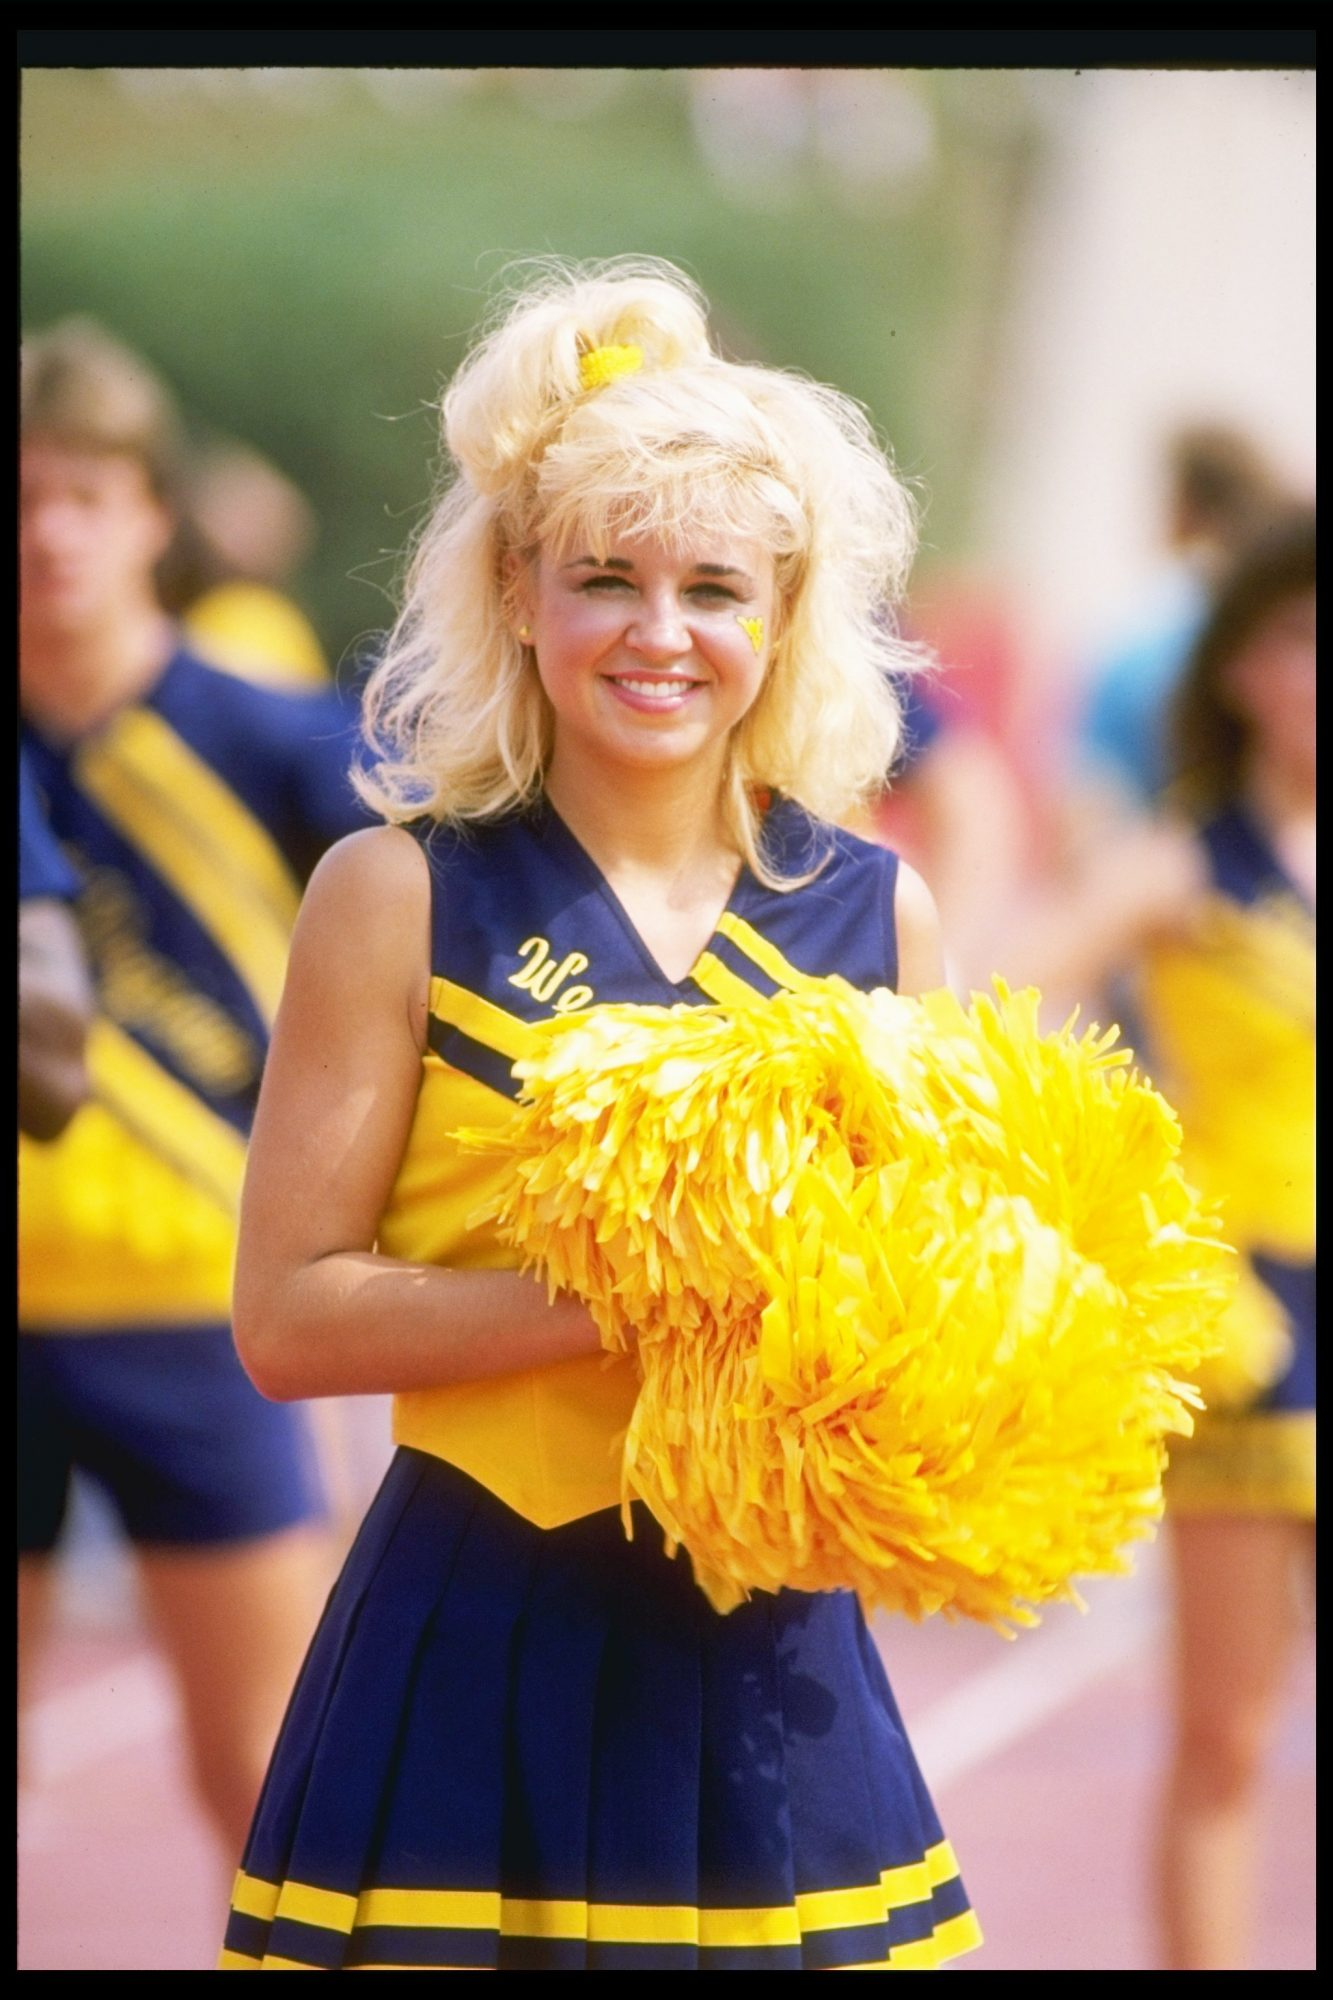 West Virginia Mountaineer Cheerleader